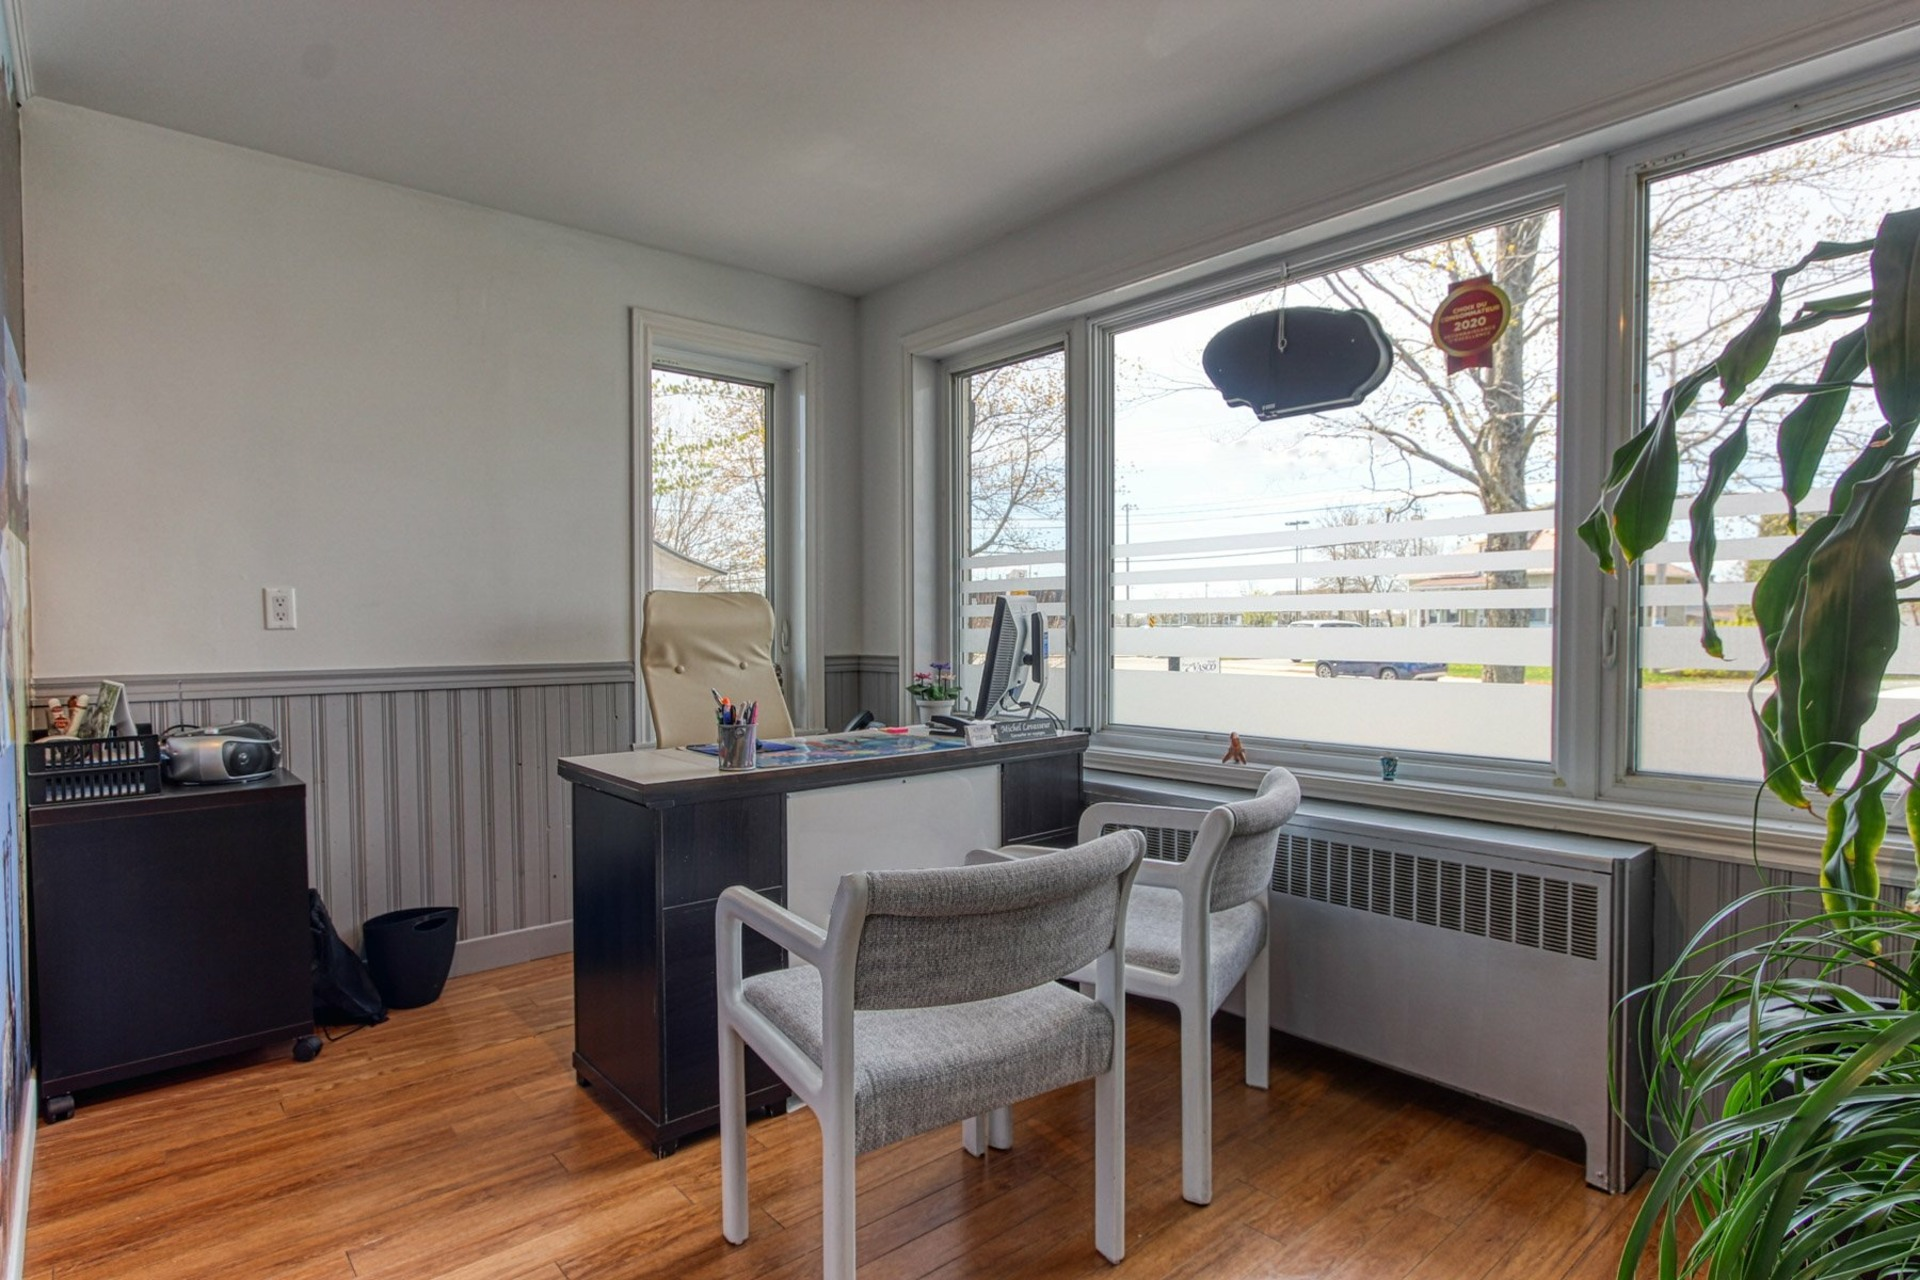 image 15 - House For sale Bécancour - 8 rooms